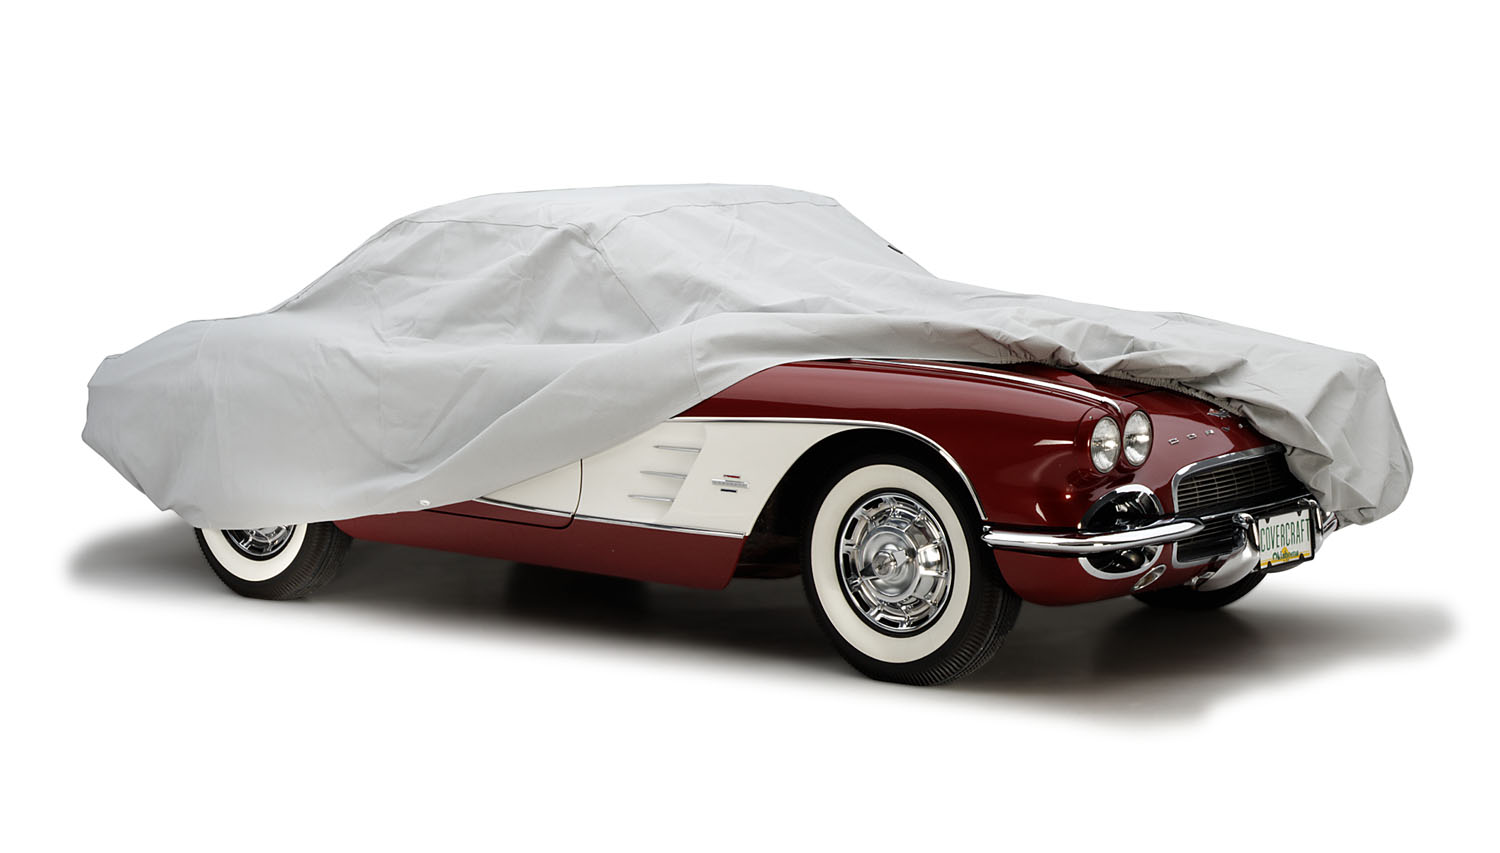 Covercraft Car Cover (CA86TK)